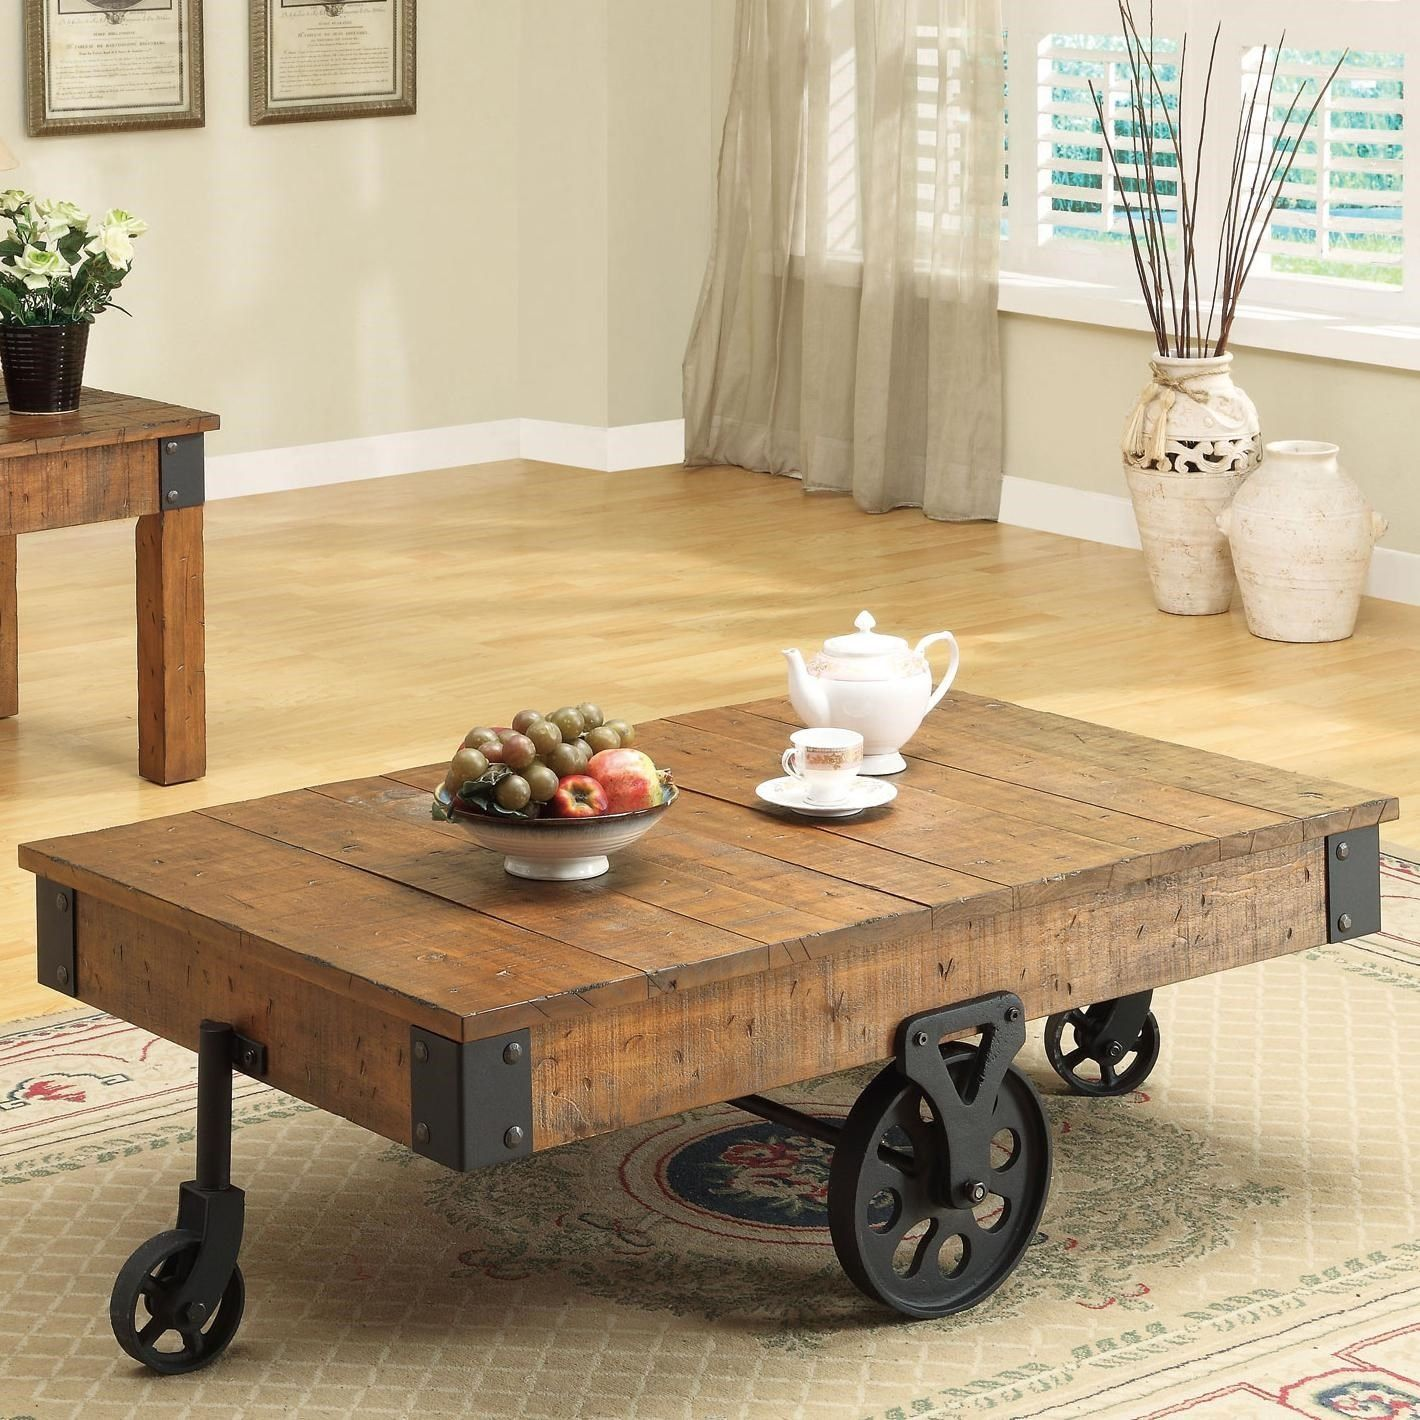 Railroad Tie Coffee Table Duo Rascalartsnyc